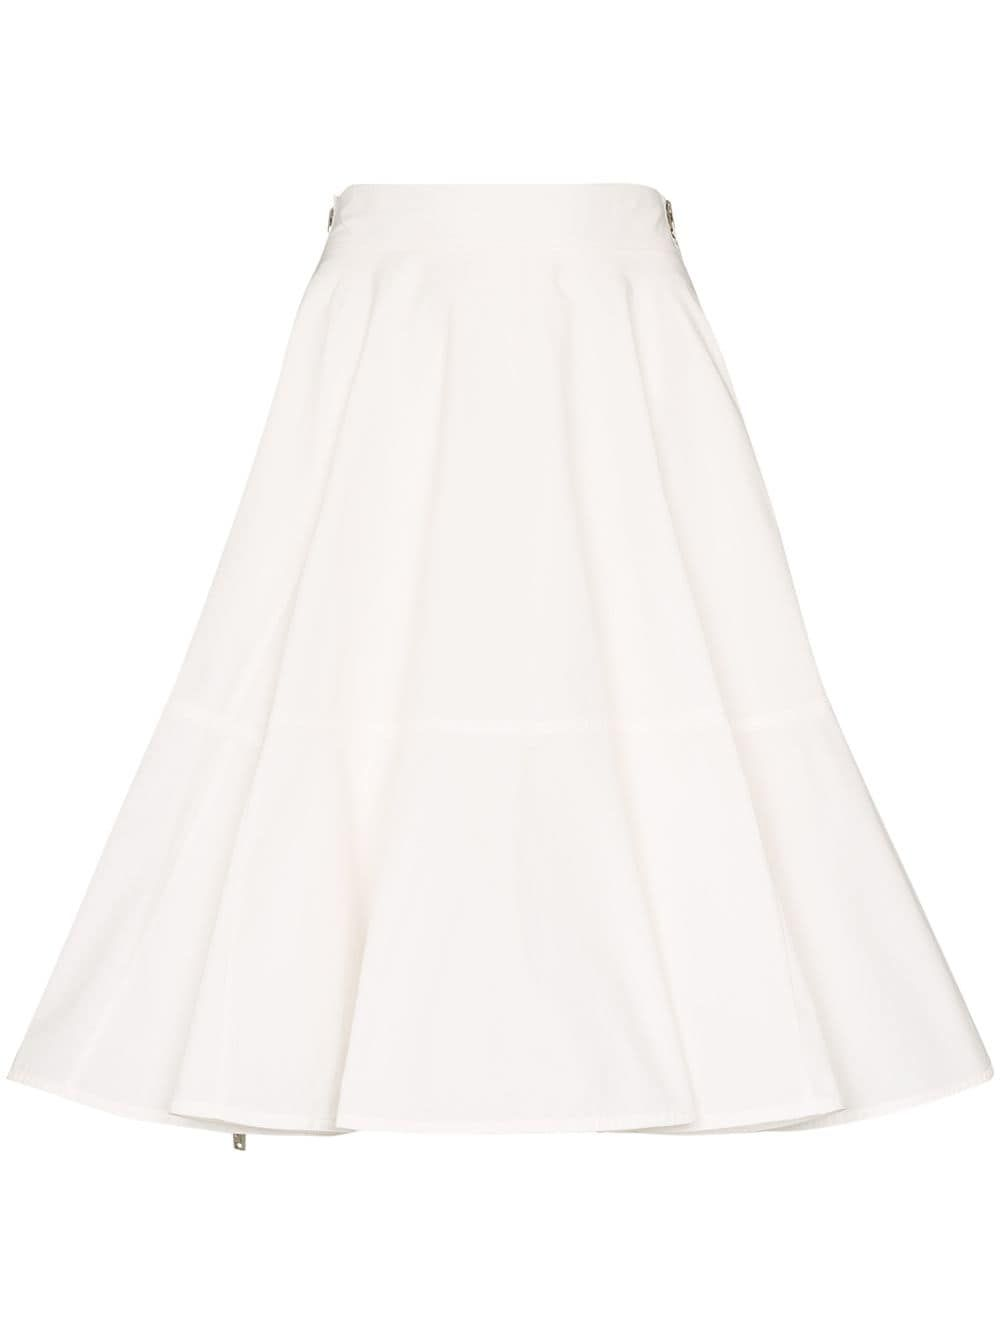 We11 Done We11done Flared Knee Length Skirt In White Modesens In 2020 Knee Length Skirt White Skirts Knee Length